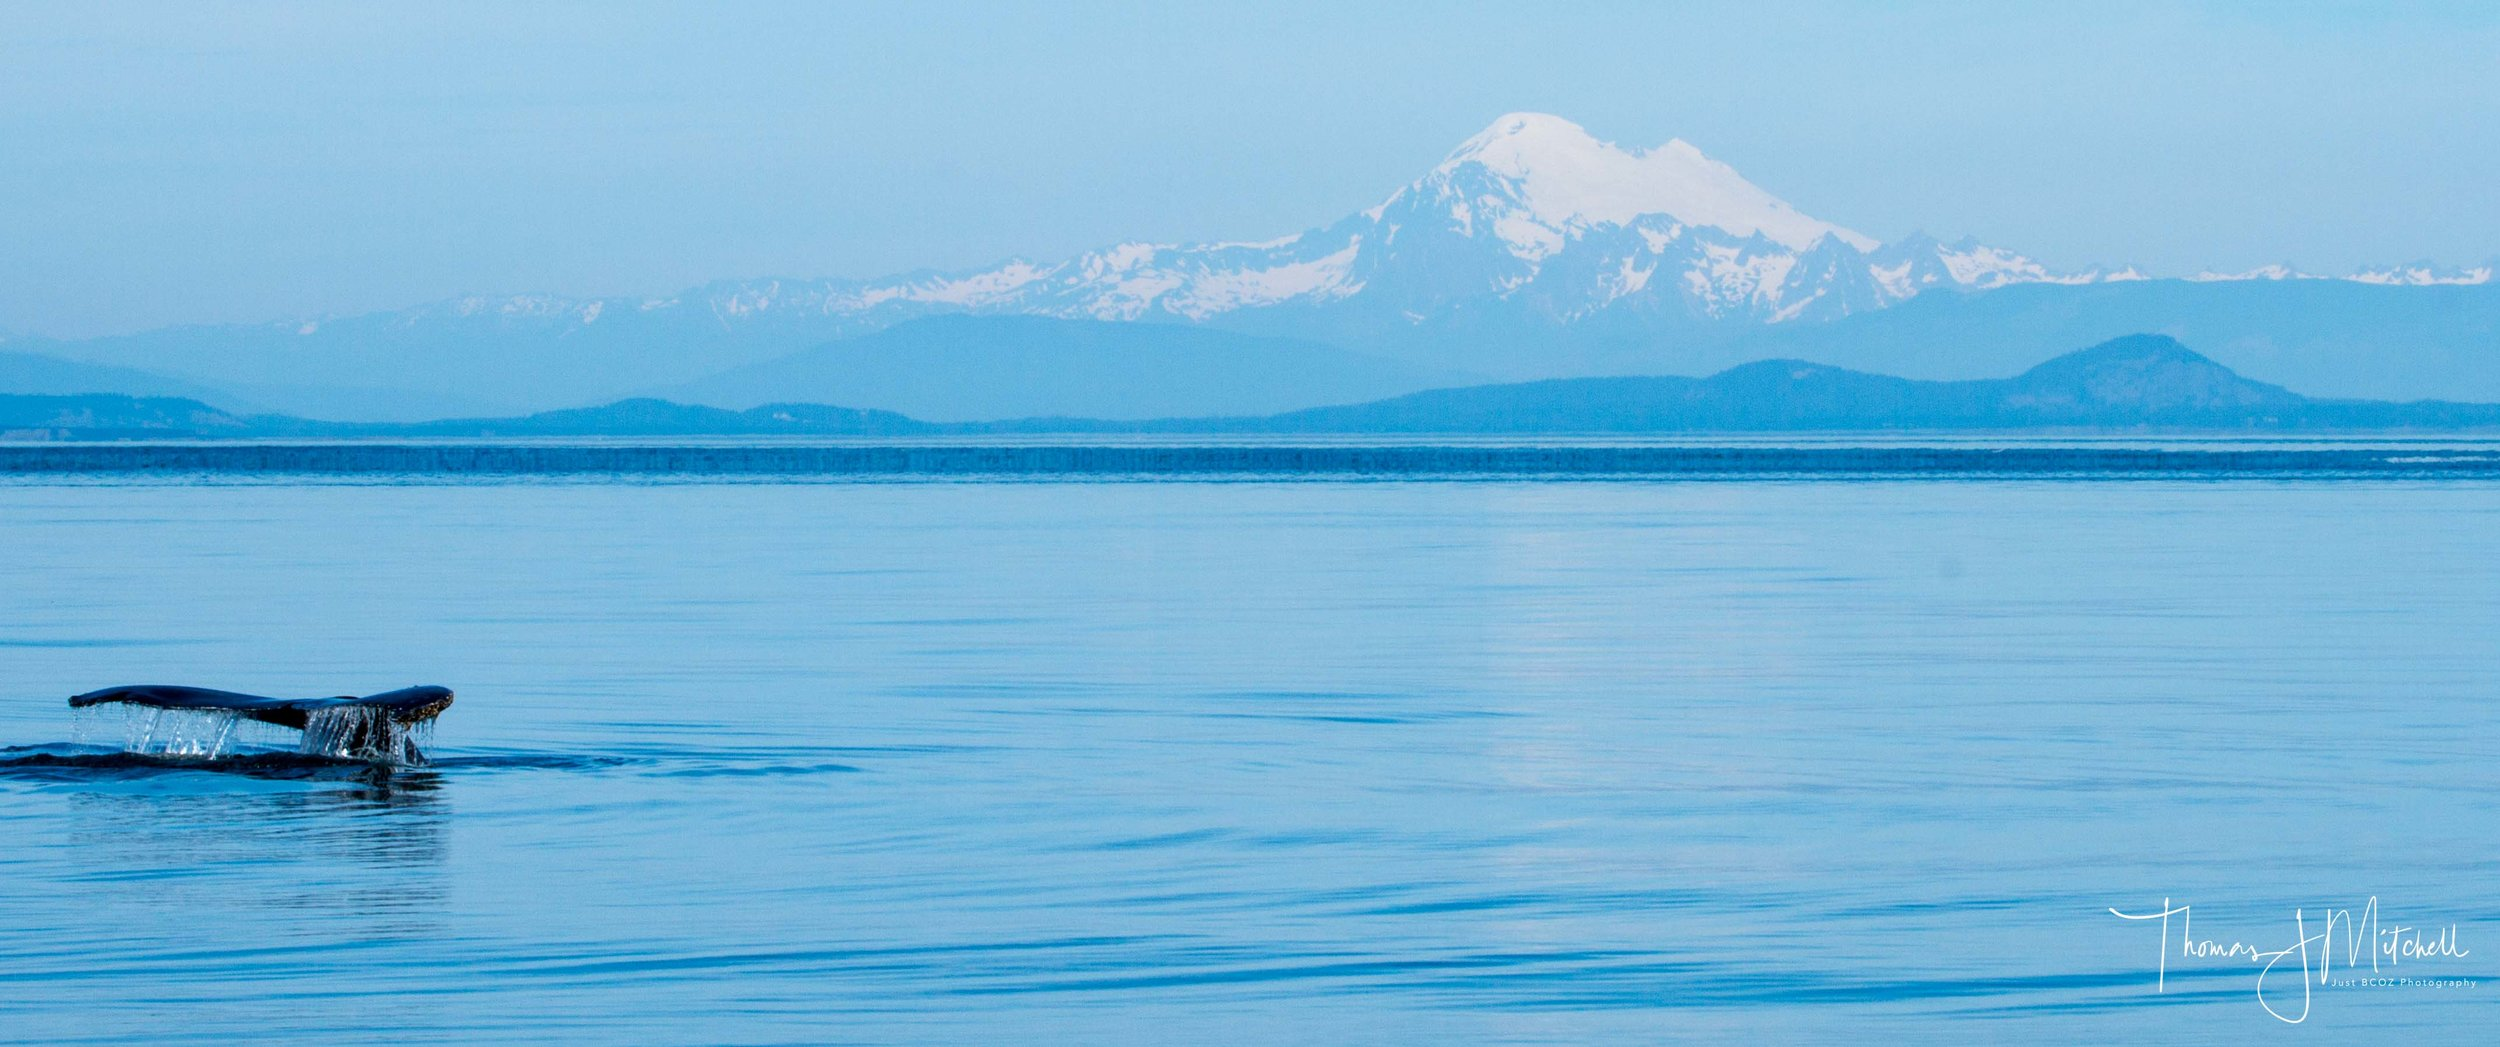 A humpback descending on a longer dive with Mt. Baker in the background